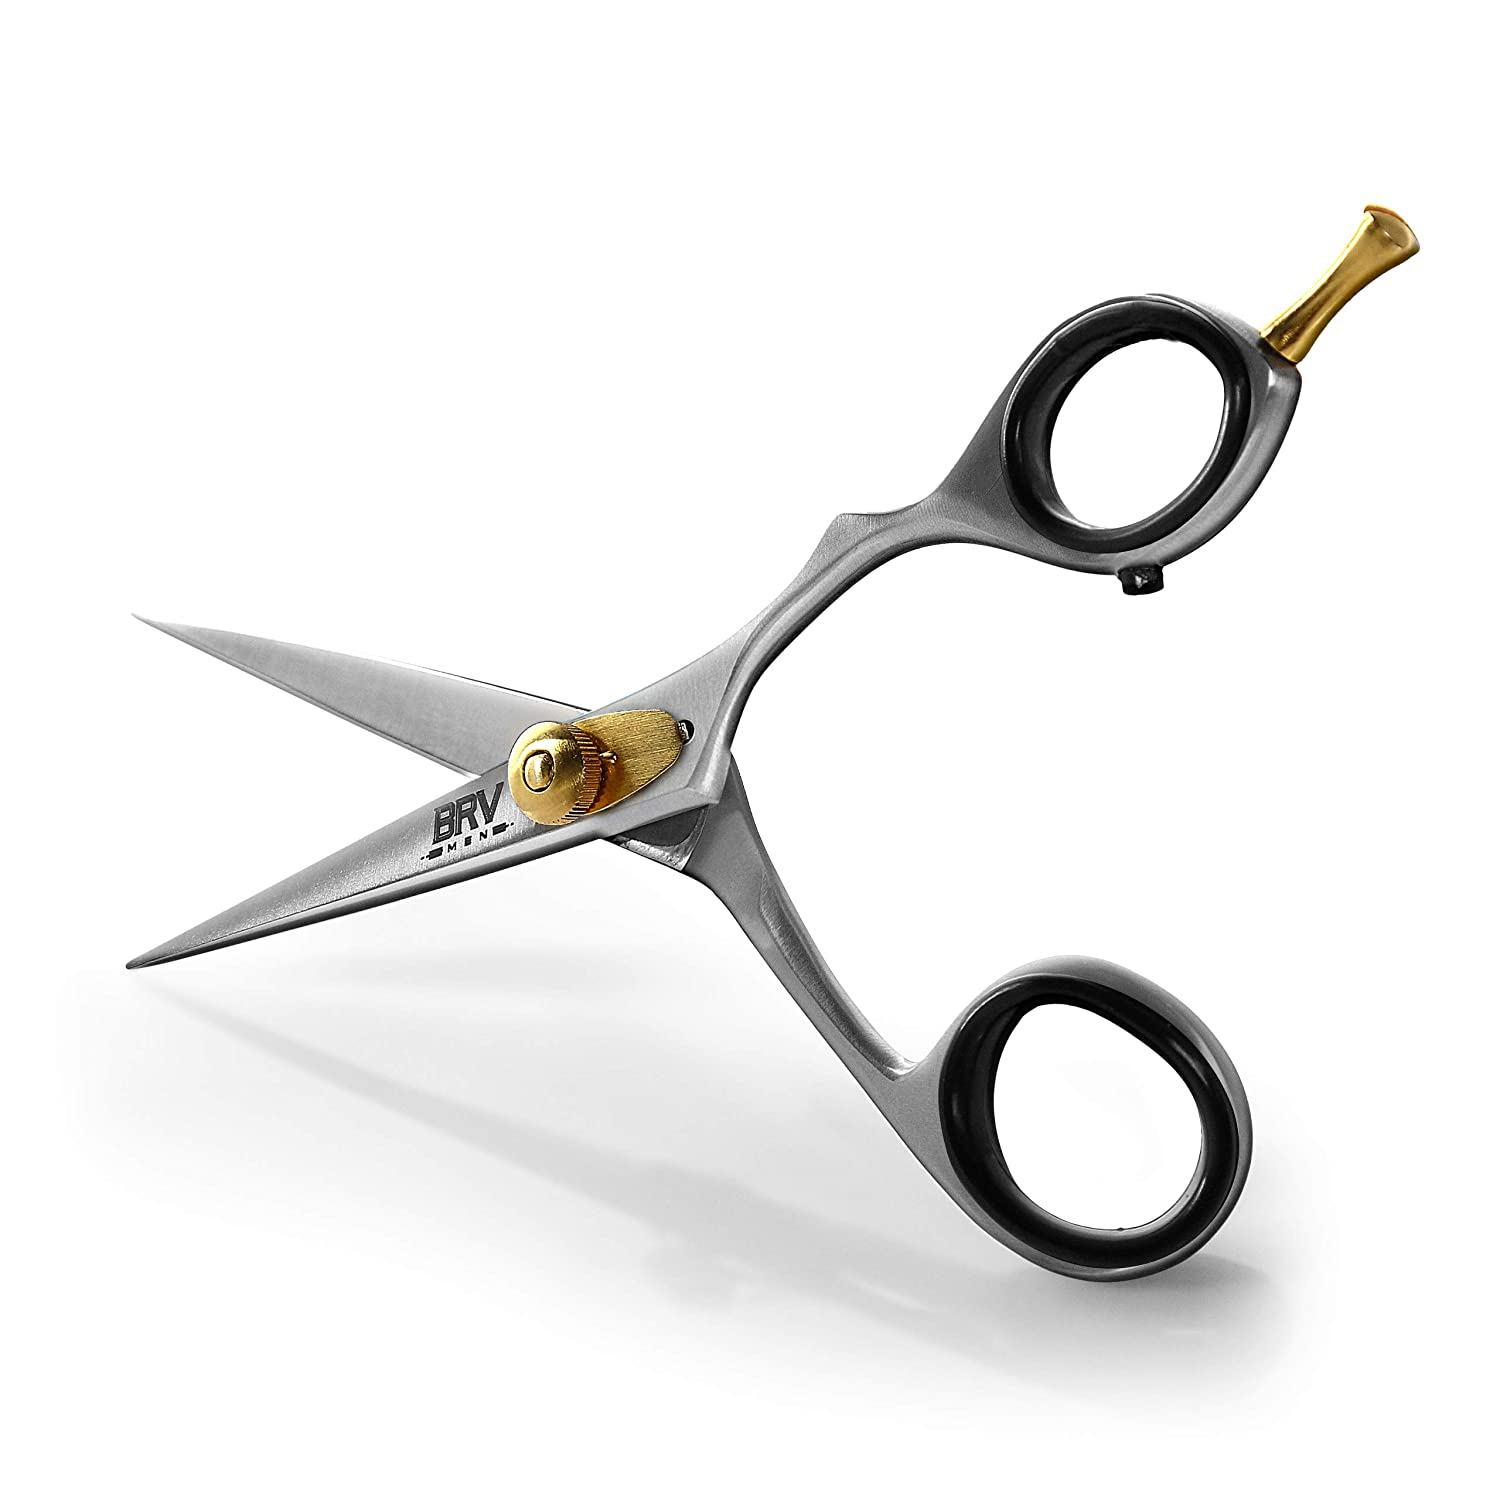 Facial Hair Scissors for Men - Mustache and Beard Trimming Scissors - 11.11  inches - All Stainless Steel - Sharp and Precise Grooming - Razor Edge